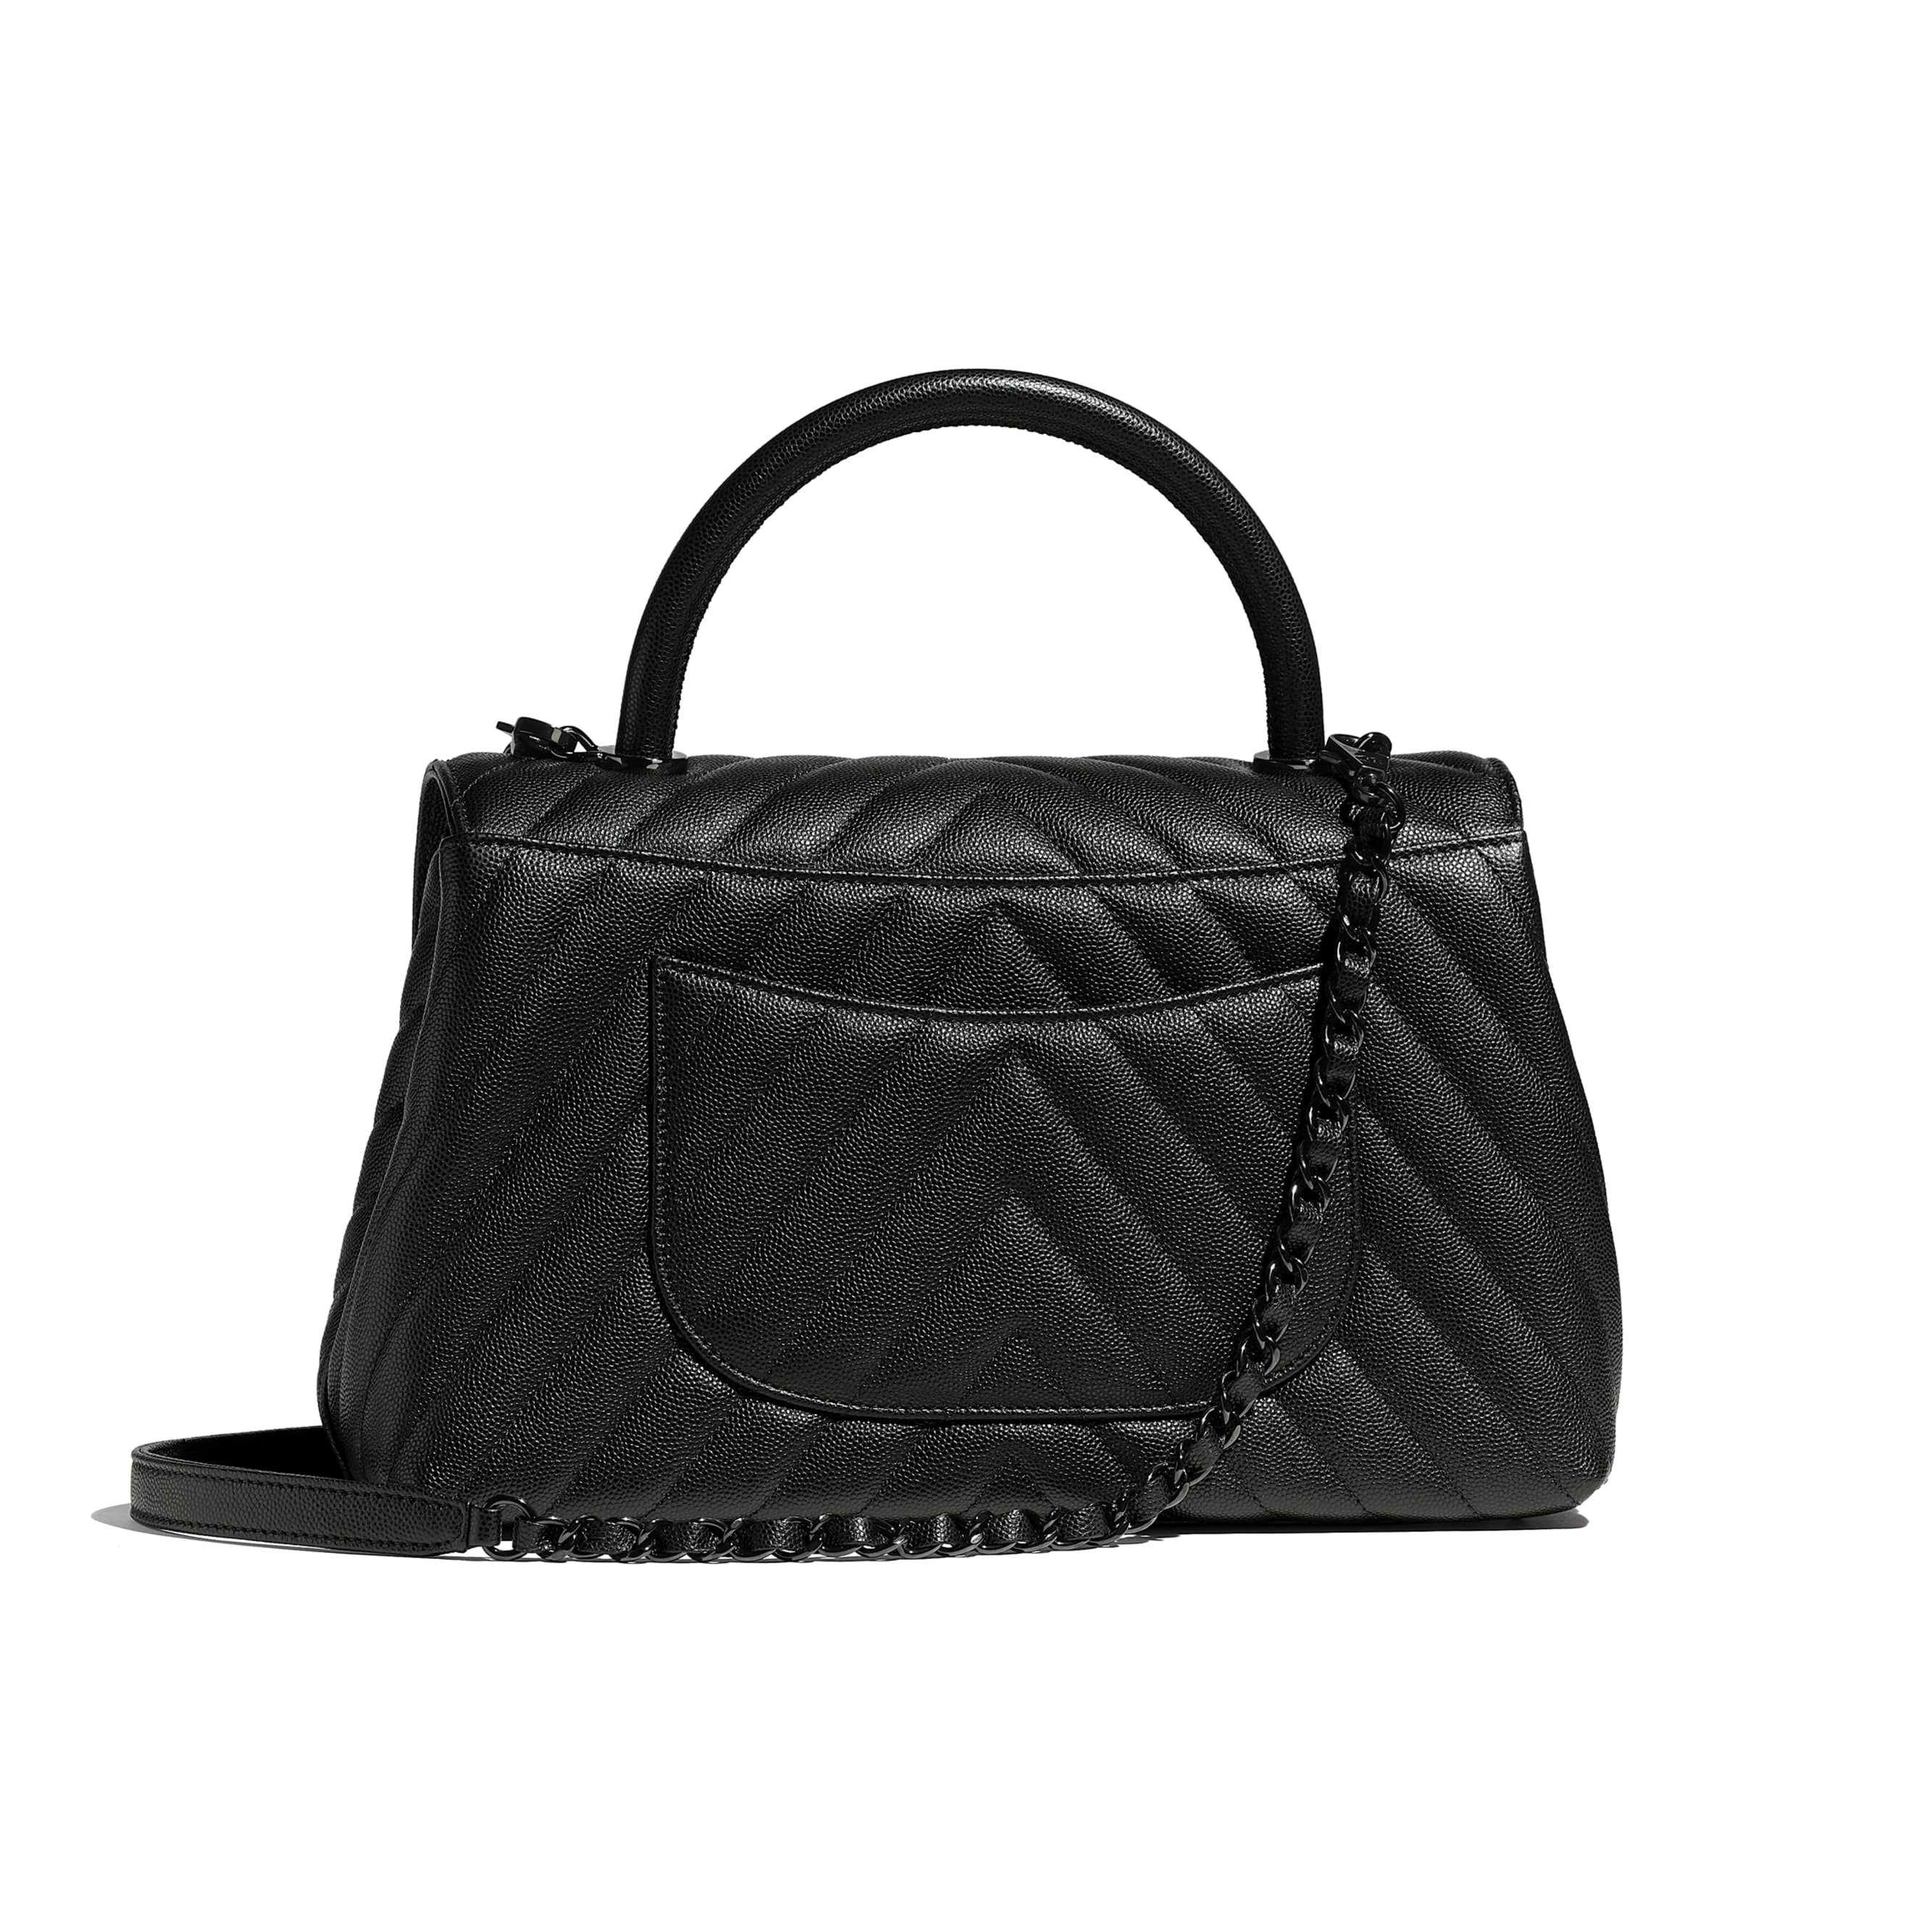 Flap Bag With Top Handle - Black - Grained Calfskin & Black Metal - Alternative view - see standard sized version